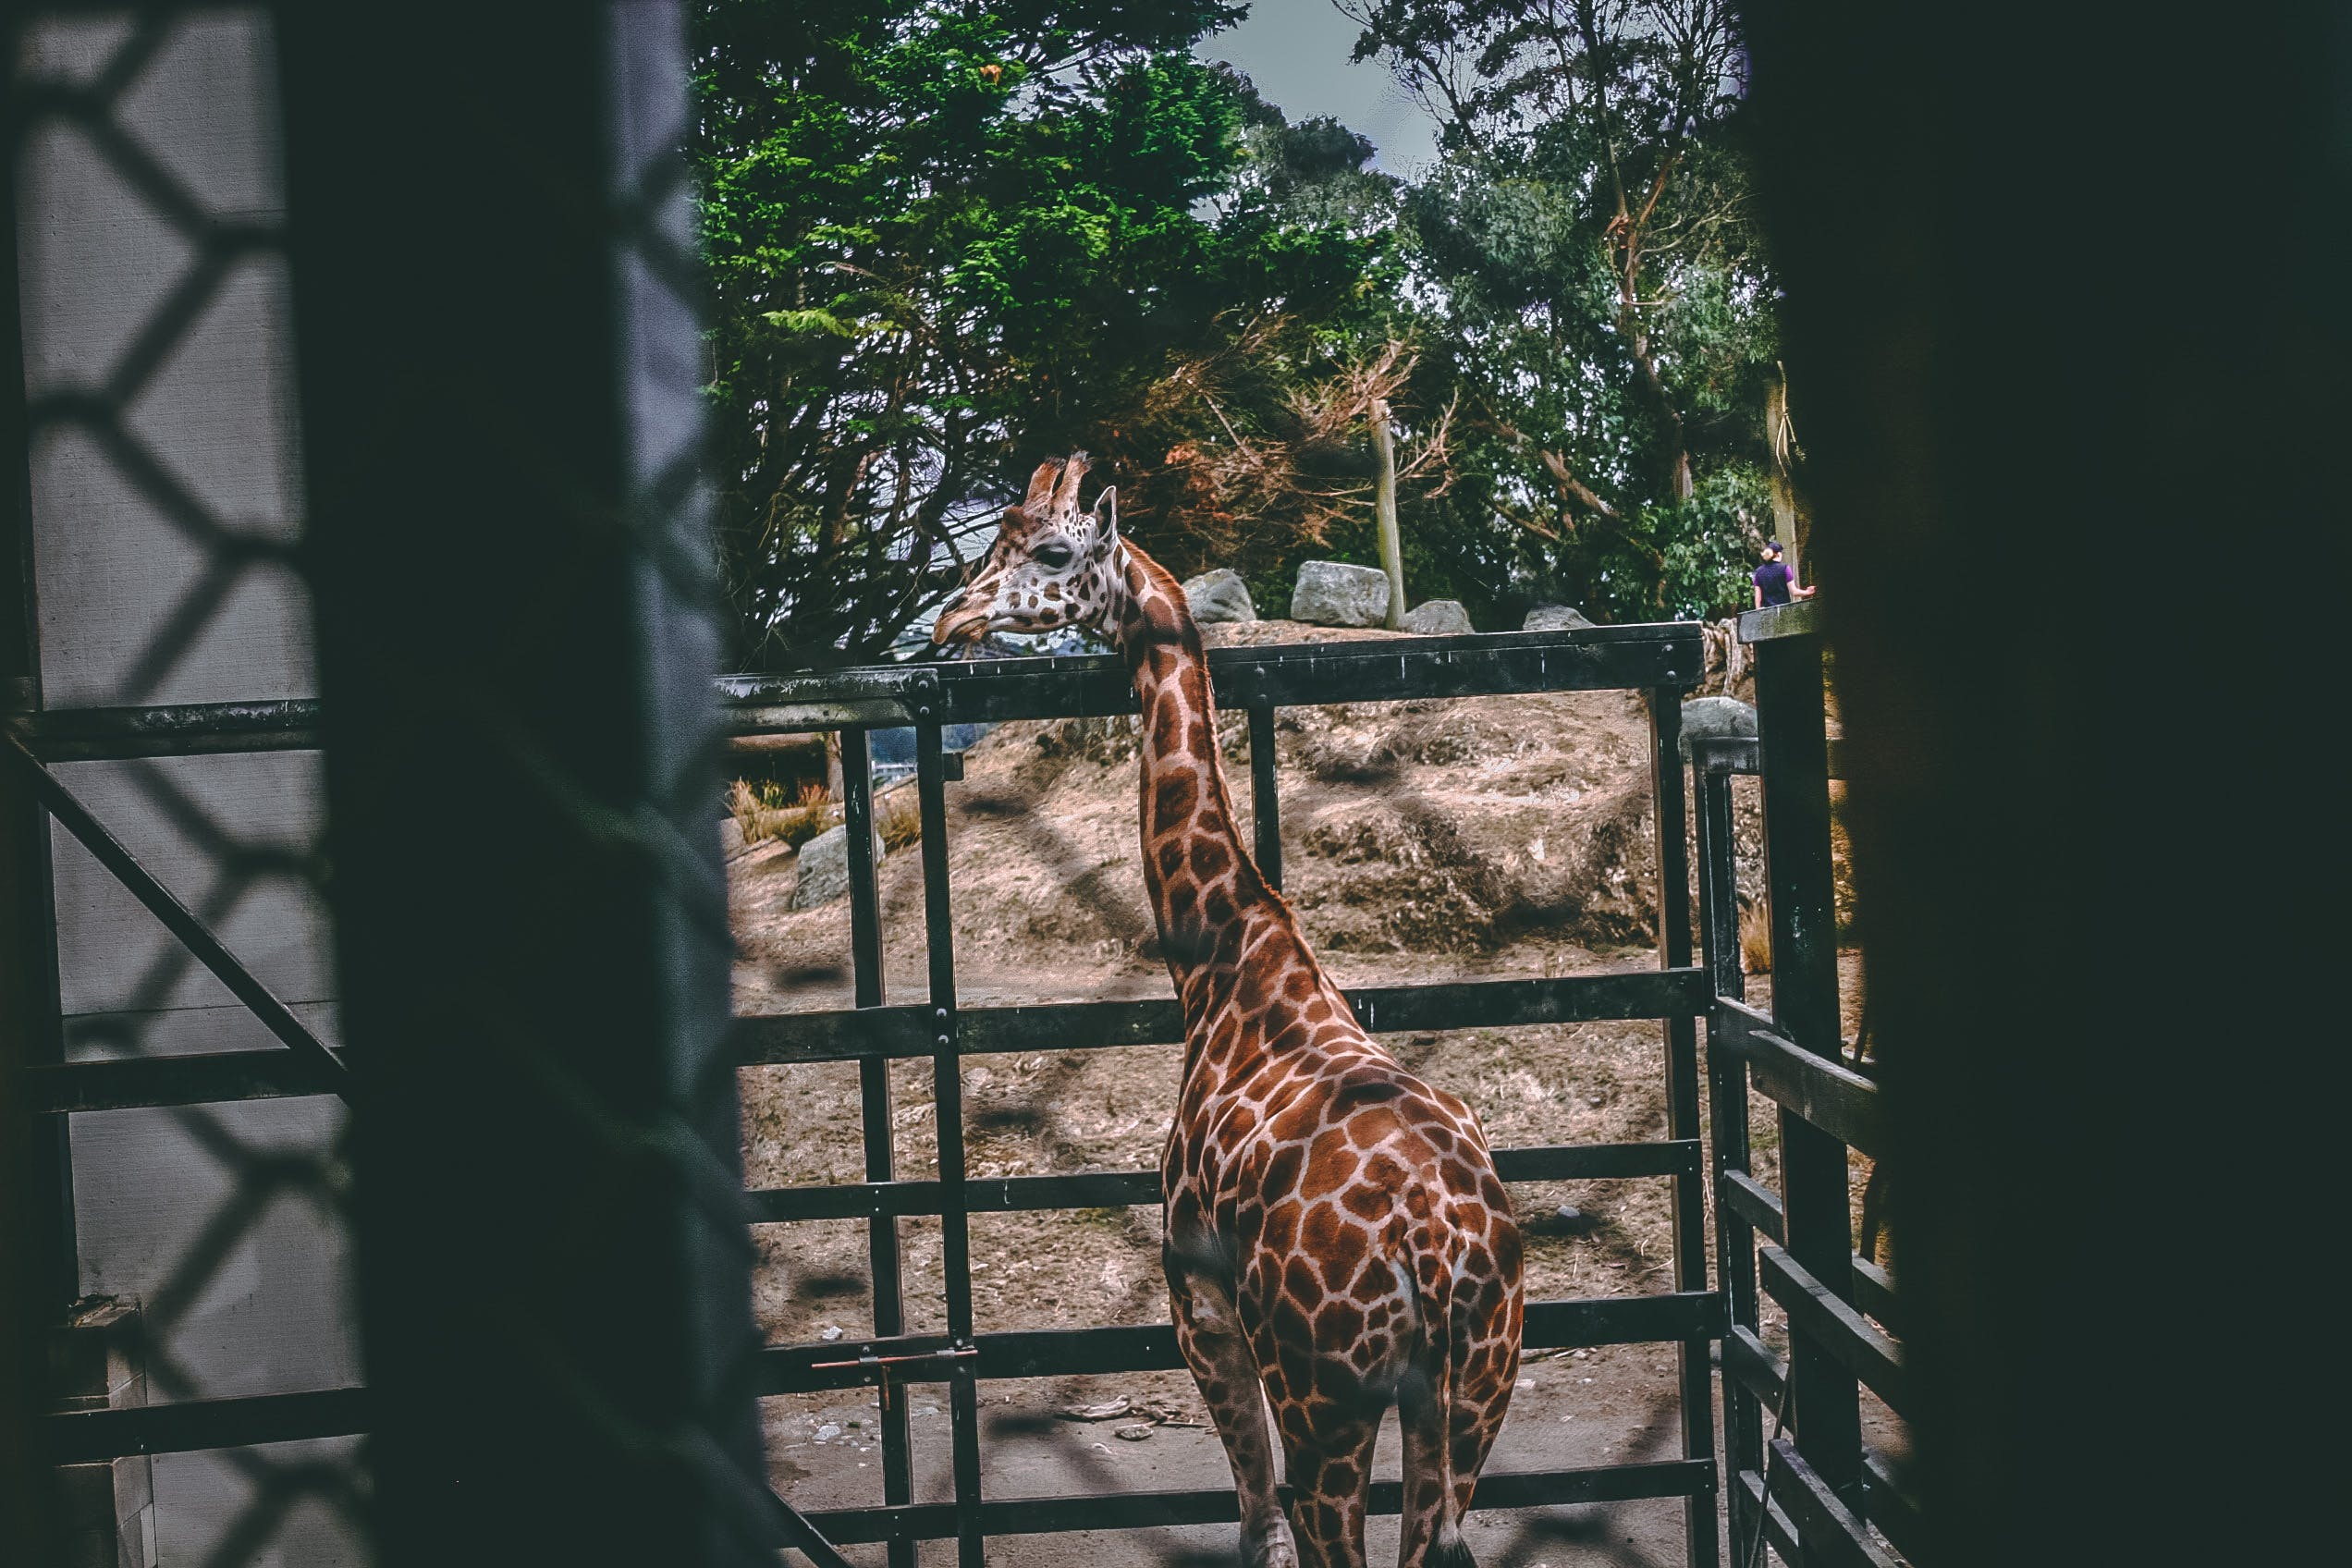 Giraffe on Black Metal Cage